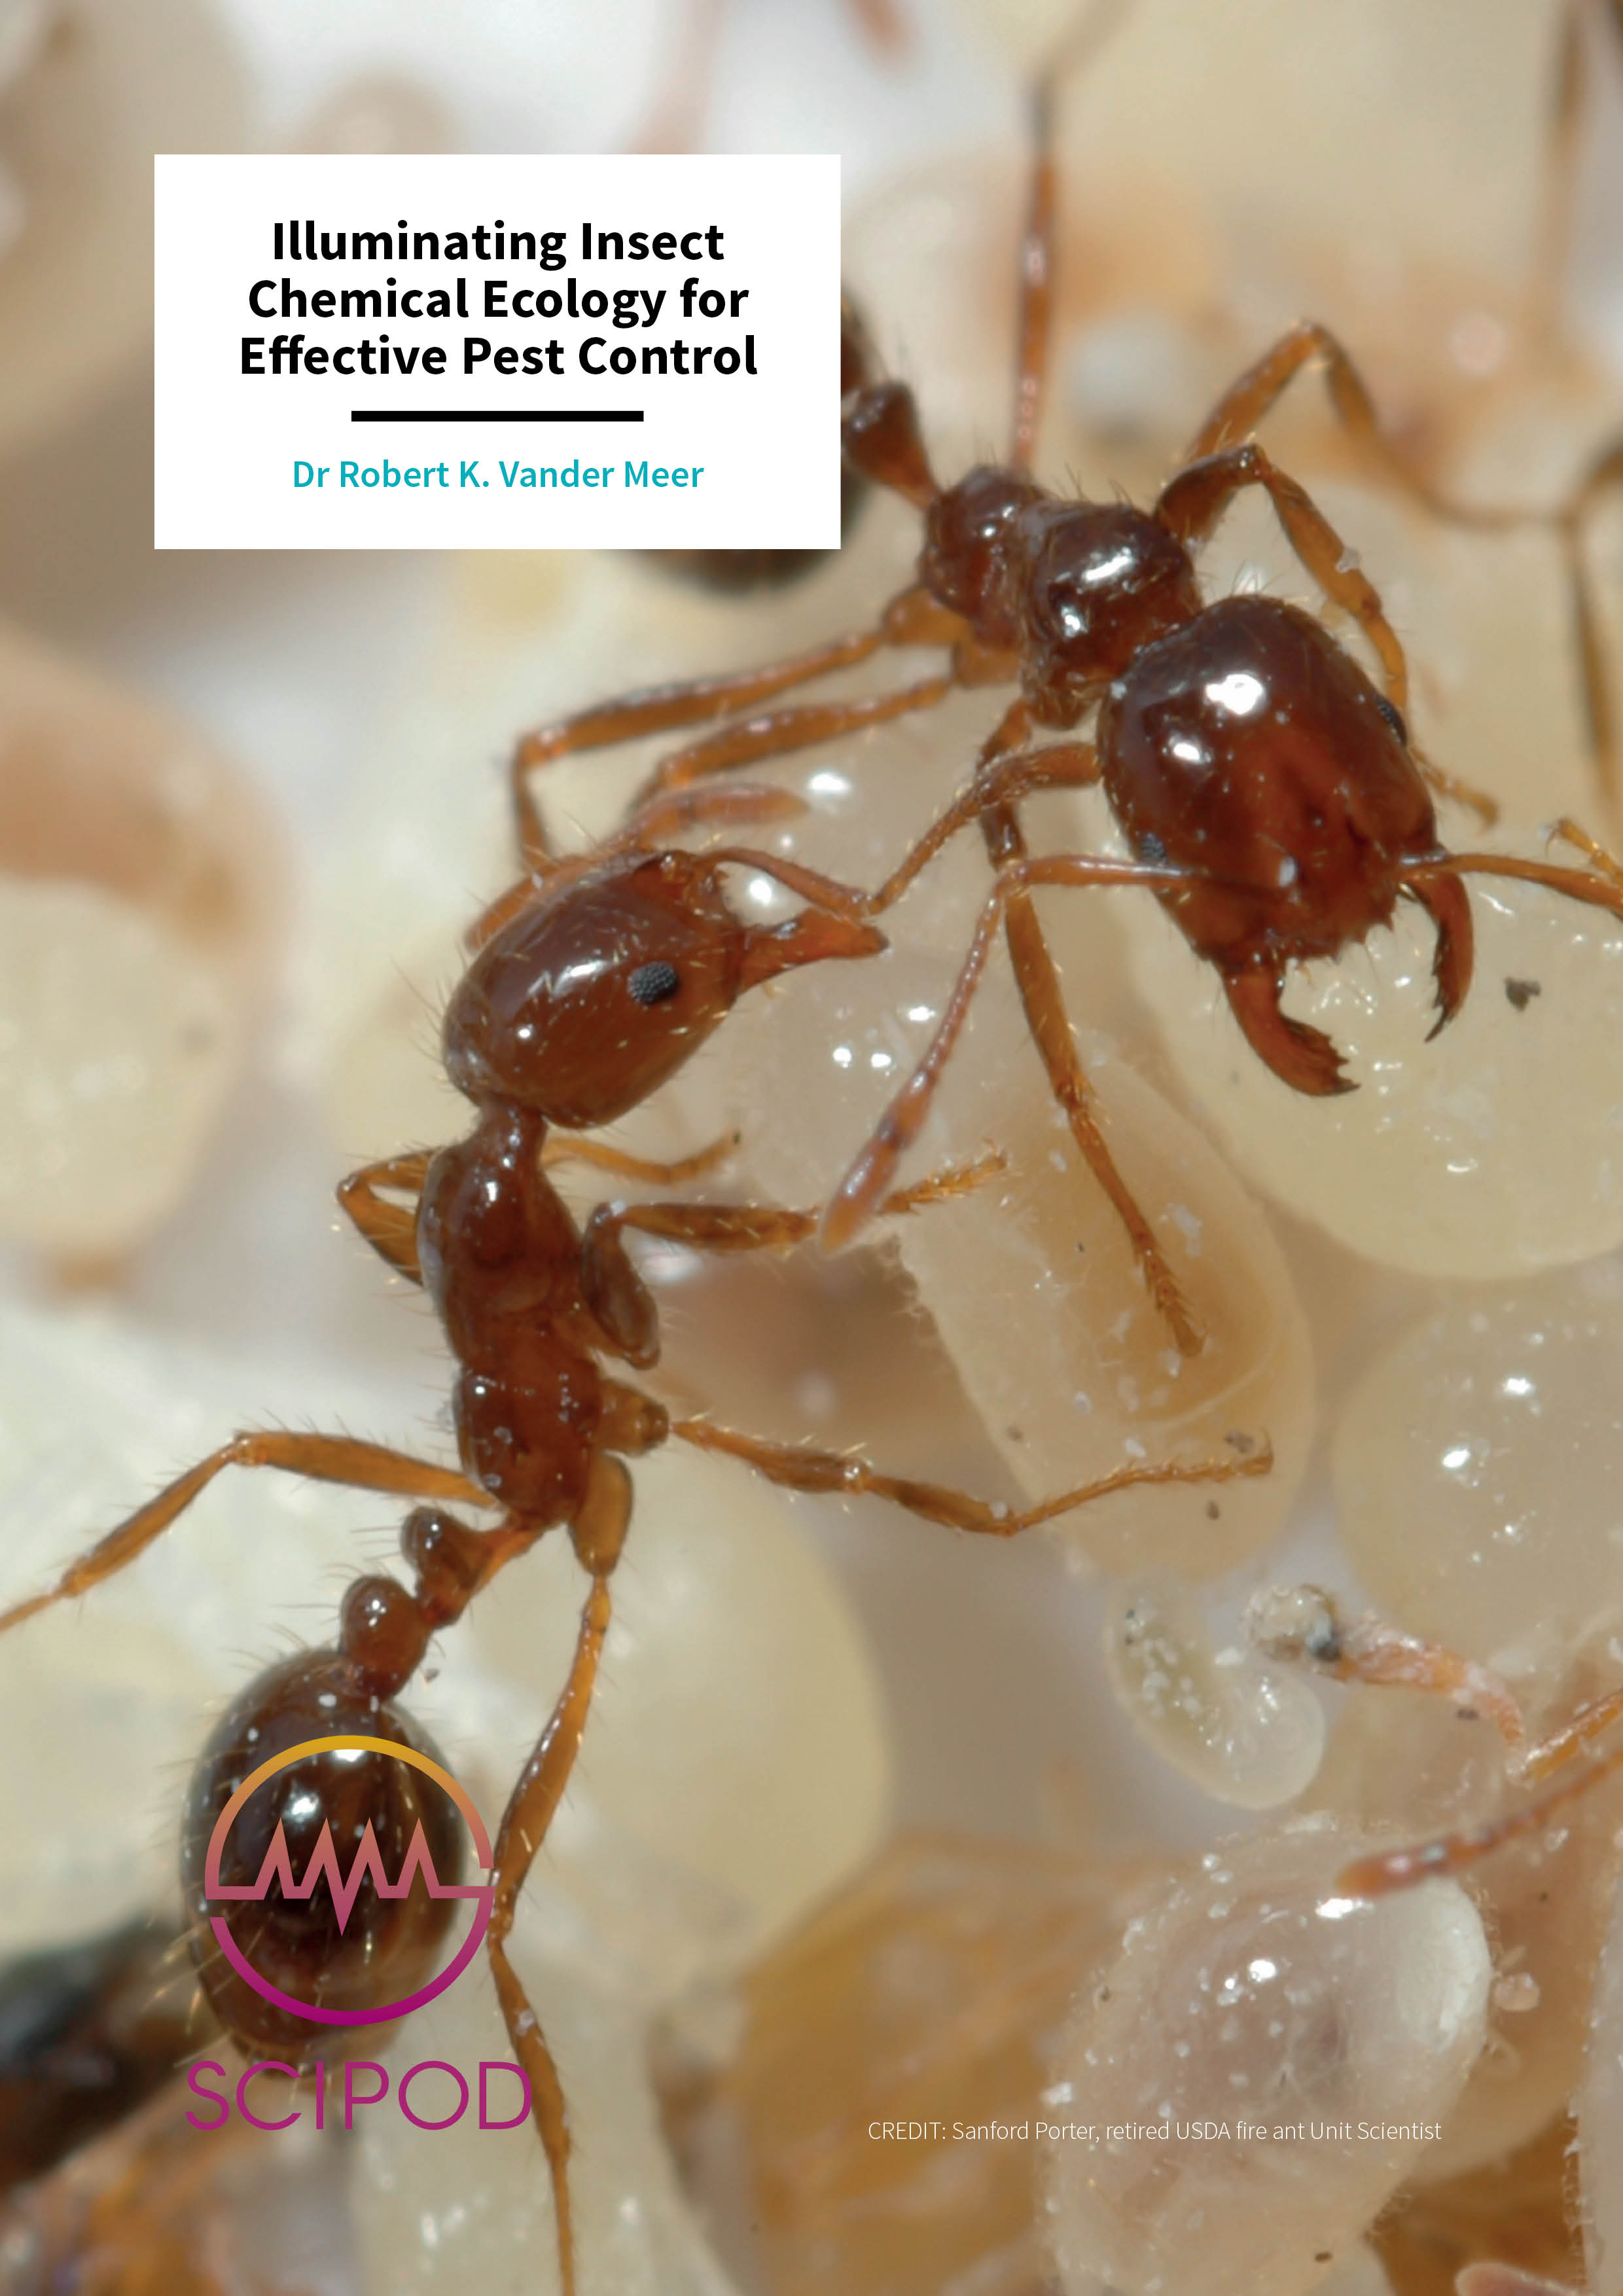 Illuminating Insect Chemical Ecology for Effective Pest Control – Dr Robert K. Vander Meer, USDA